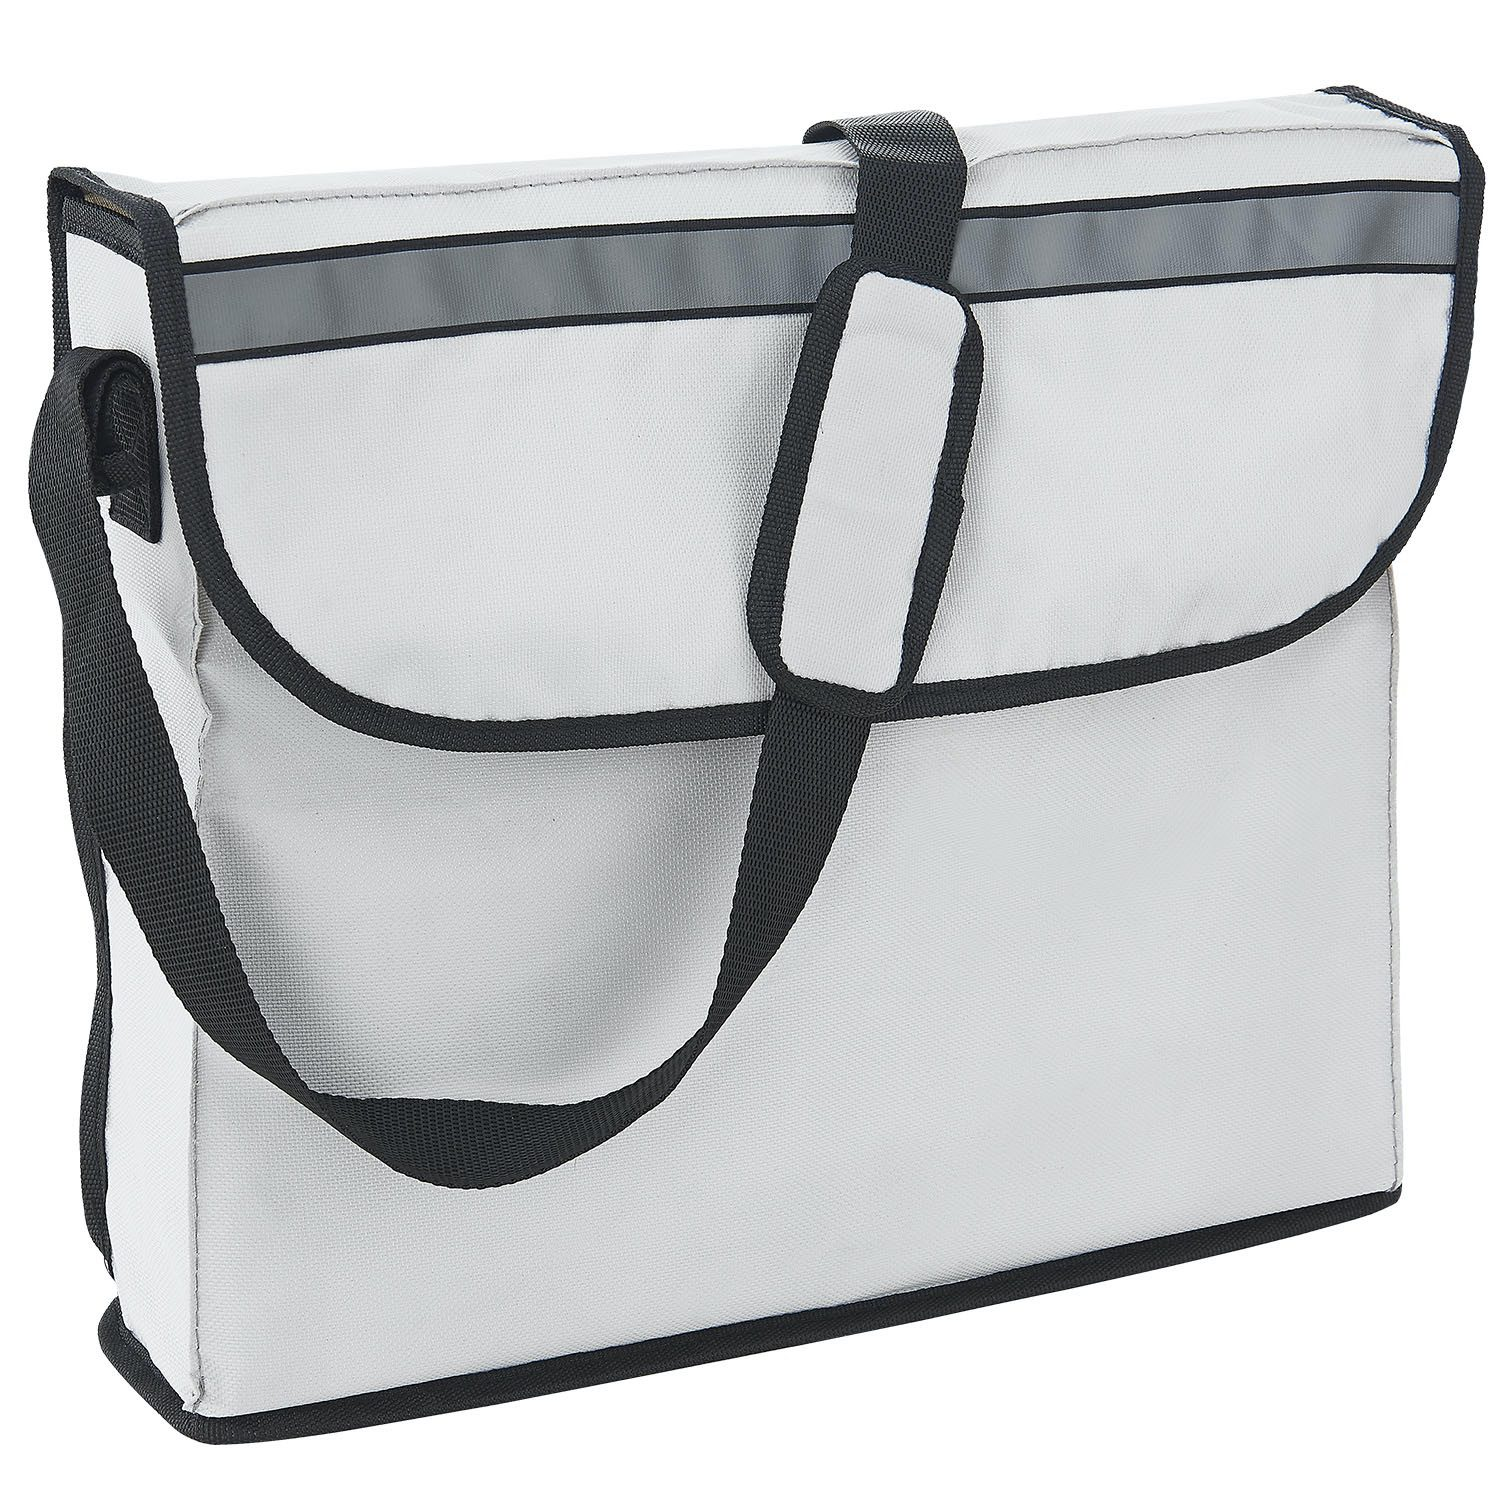 Rollator - HealthSmart - Folding - Silver - Removable Bag with Strap